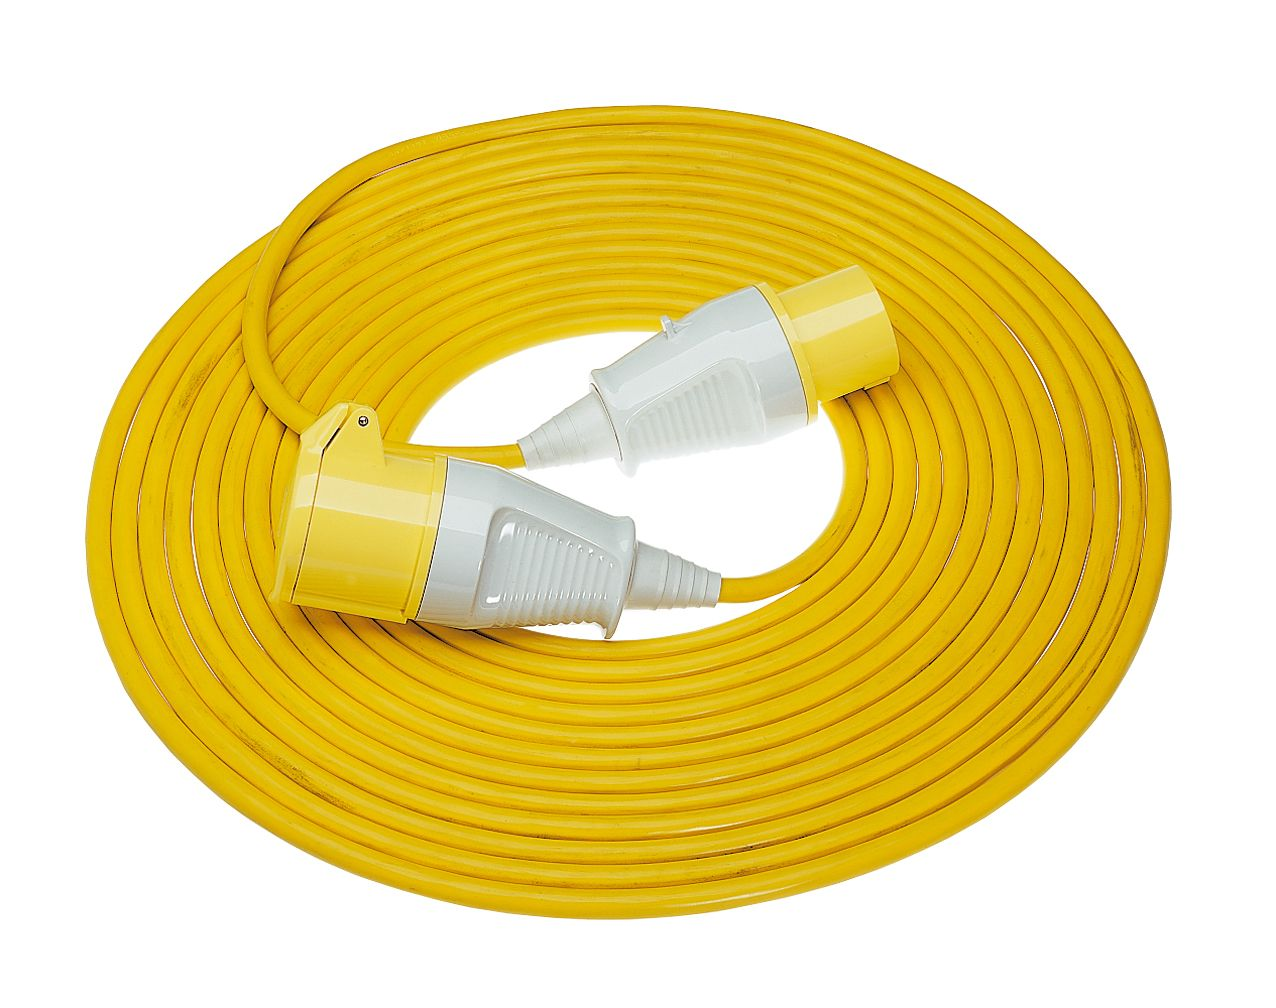 Extension Lead 110v 32a 2.5mm - 25m